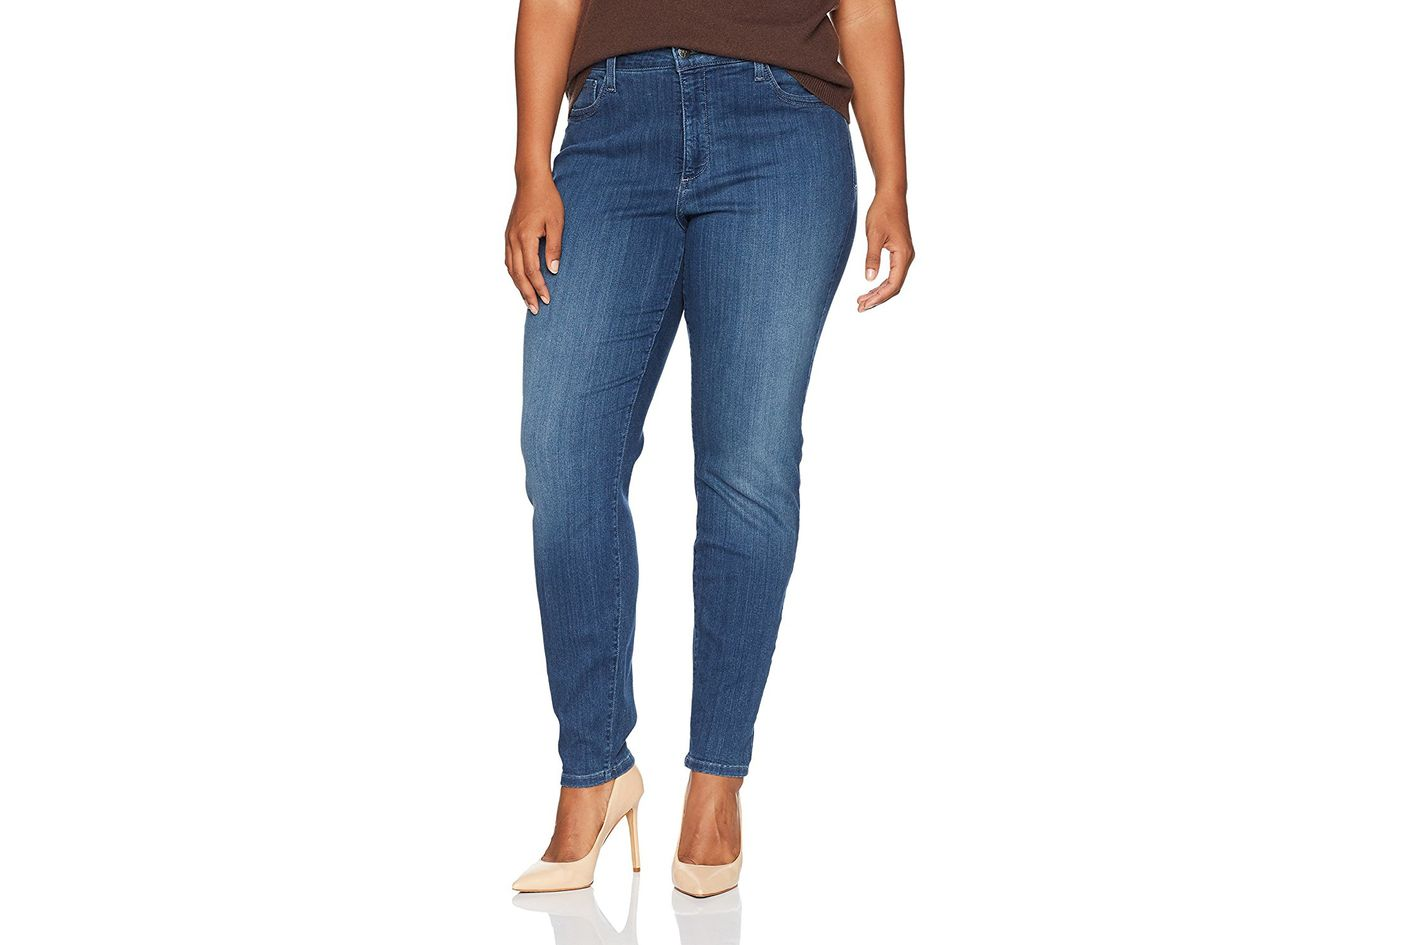 abcced554c0d1 10 Best Plus-Size Jeans According to Real Women 2018